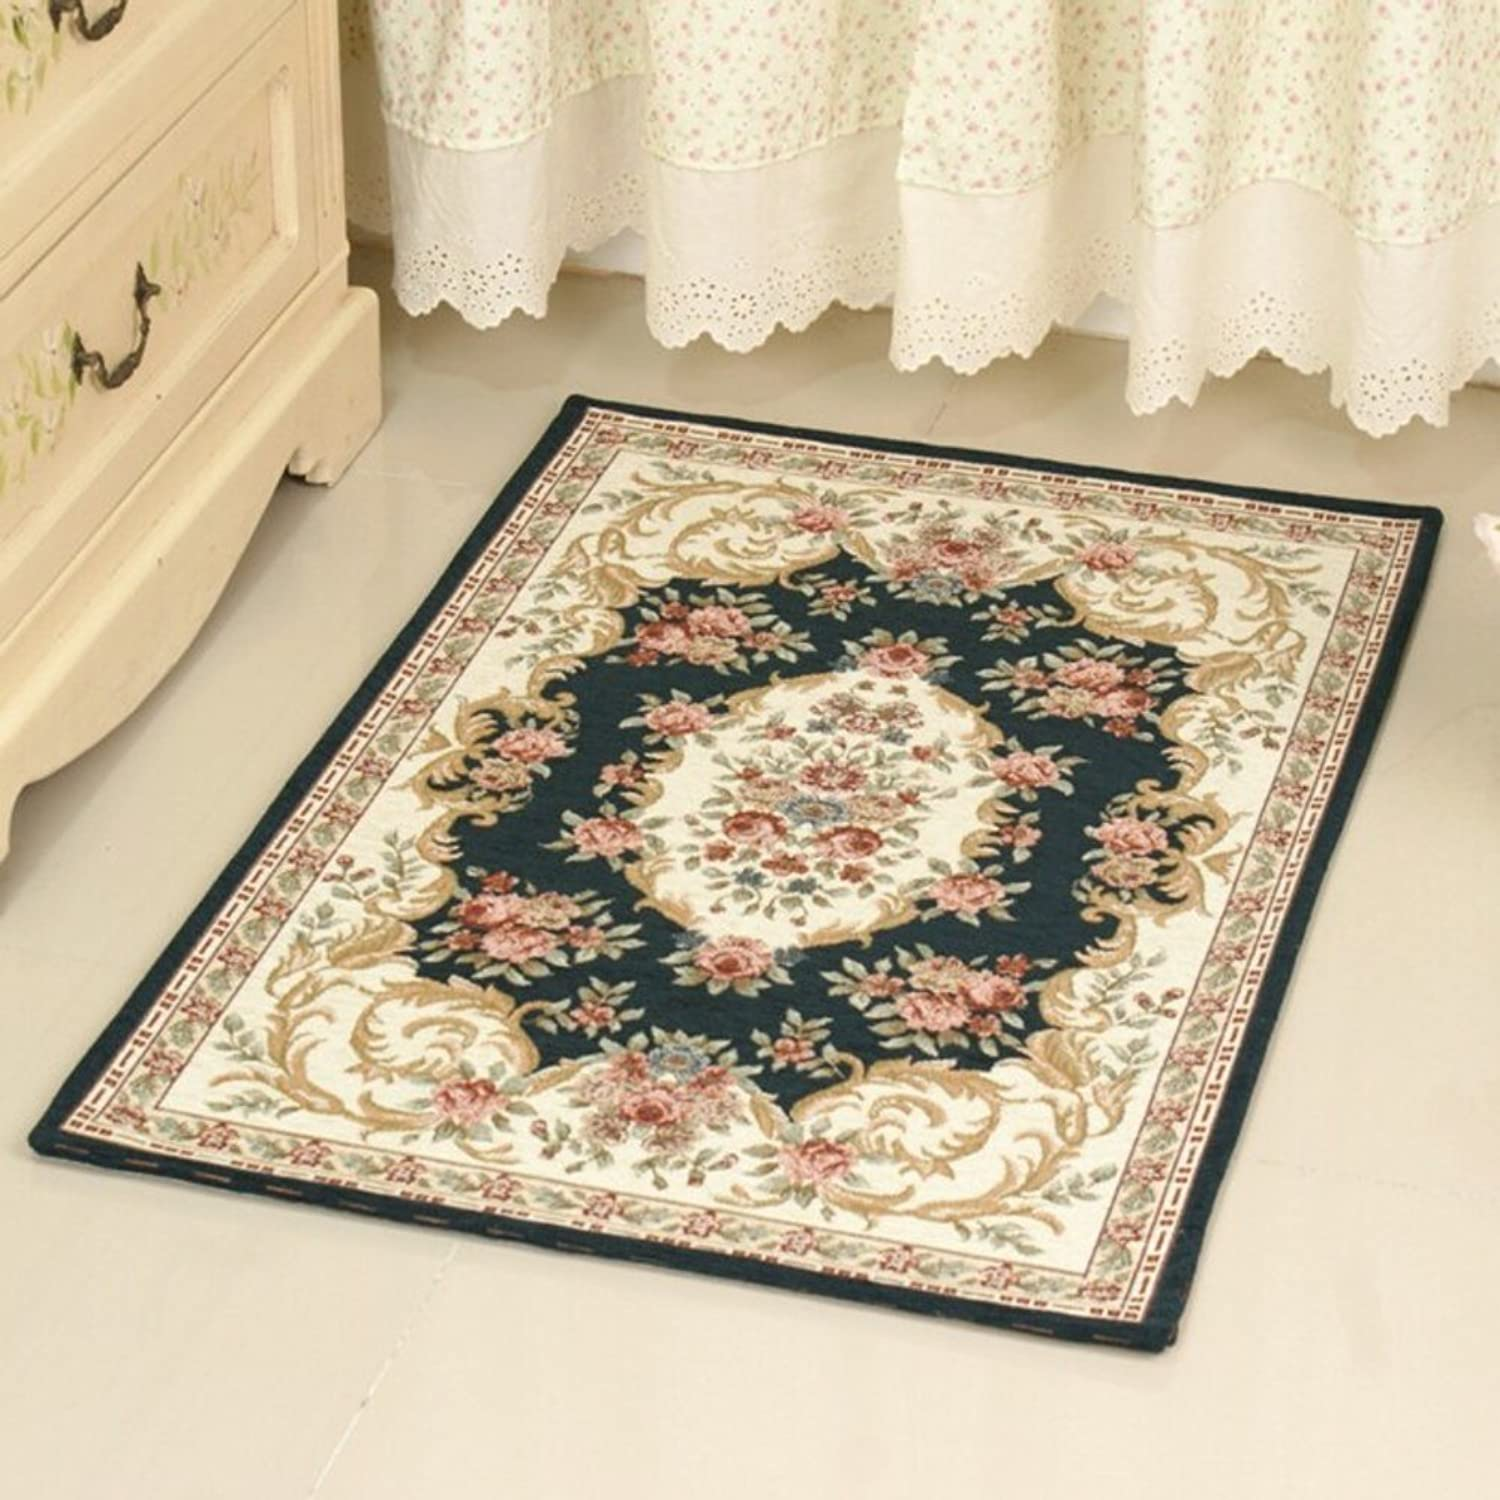 European-Style Floor mats Indoor mat Bedroom Living Room Kitchen Bathroom Non-Slip Water-Absorption mat-I 90x140cm(35x55inch)